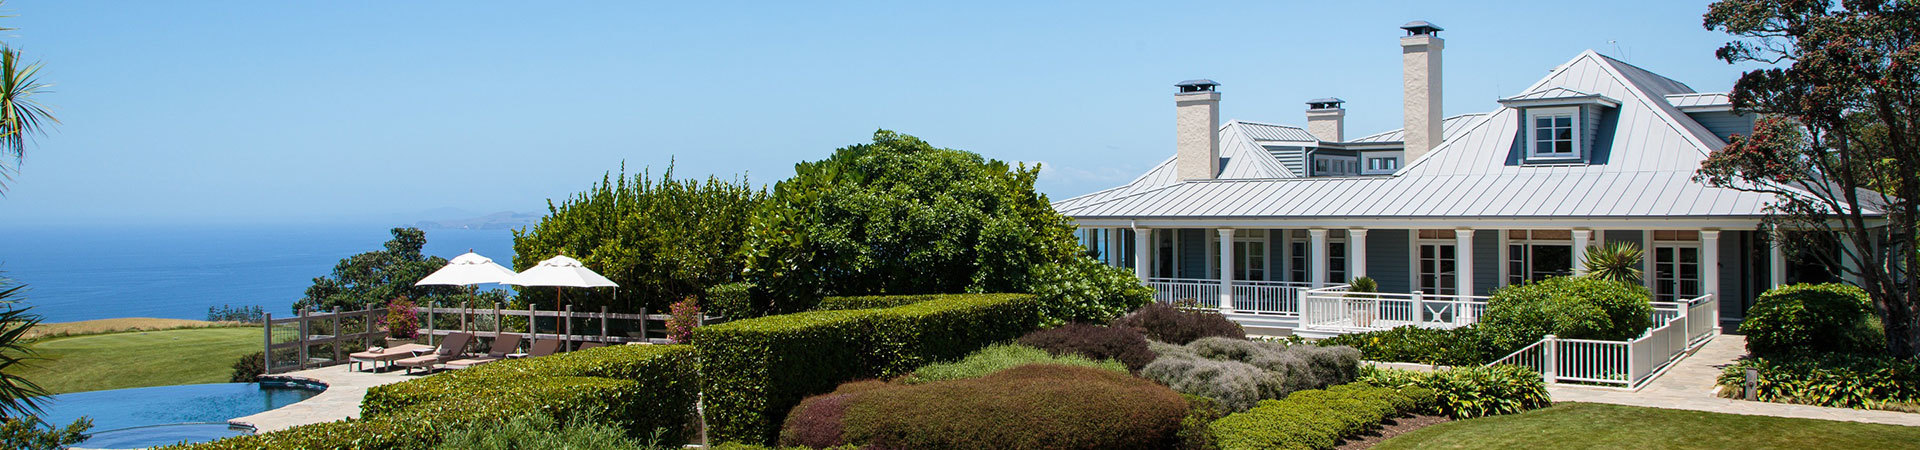 Kauri Cliffs Luxury Lodge, Northland New Zealand